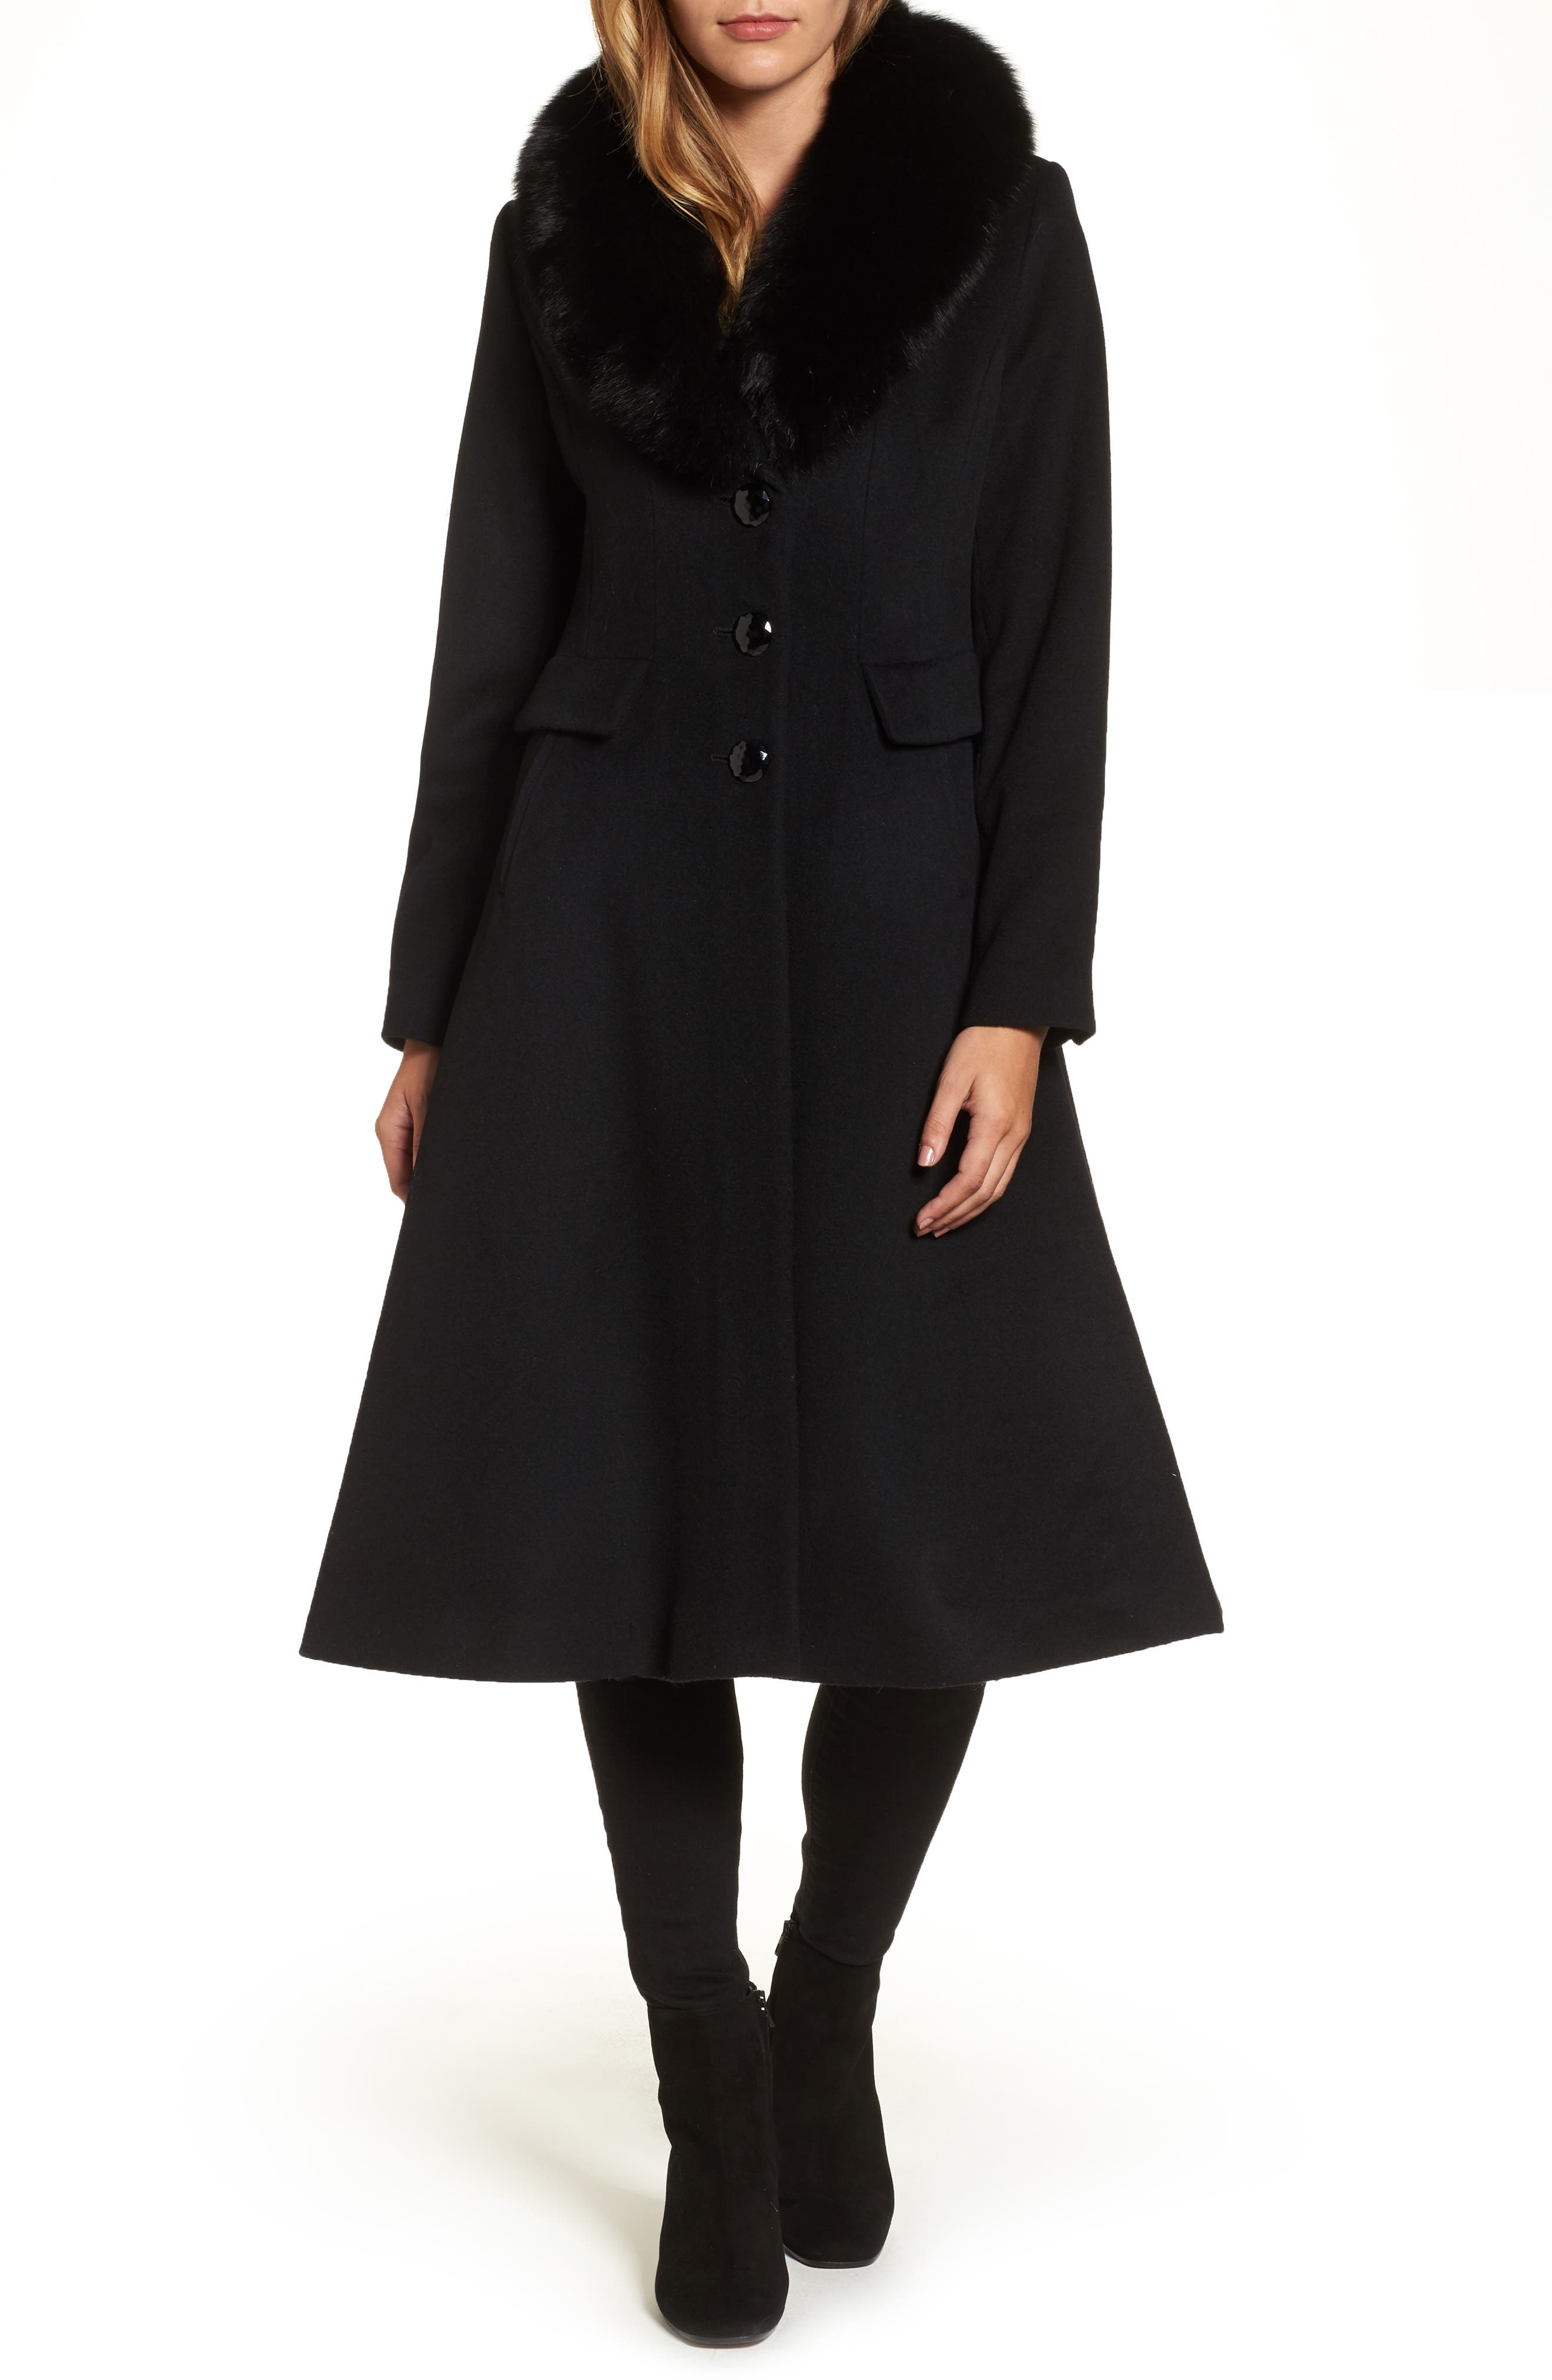 Main Image - George Simonton Couture Long Wool Blend Coat with Genuine Fox Fur Collar